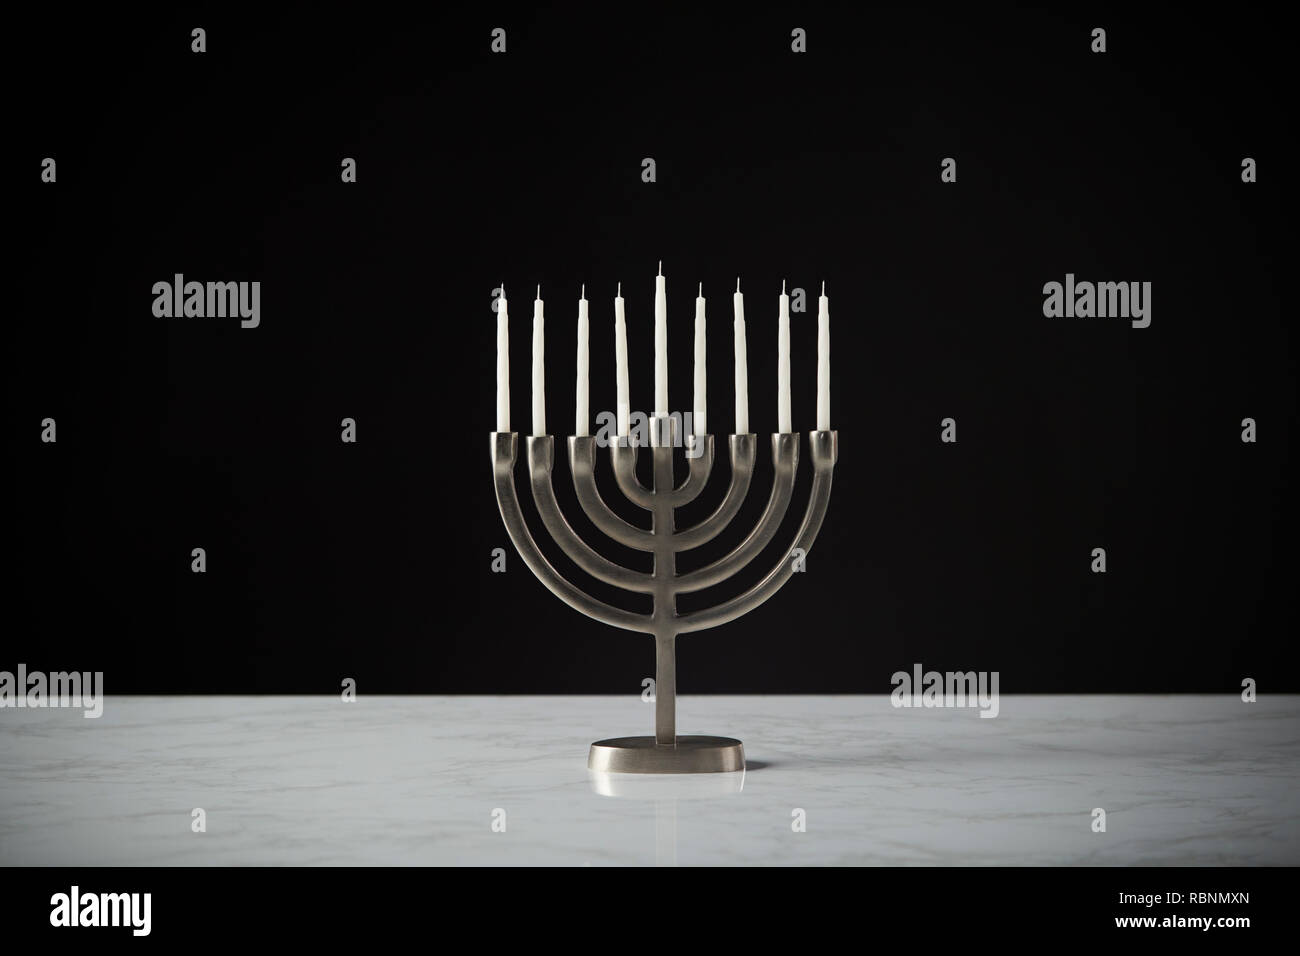 Metal Hanukkah Menorah With Unlit Candles On Marble Surface Against Black Studio Background - Stock Image